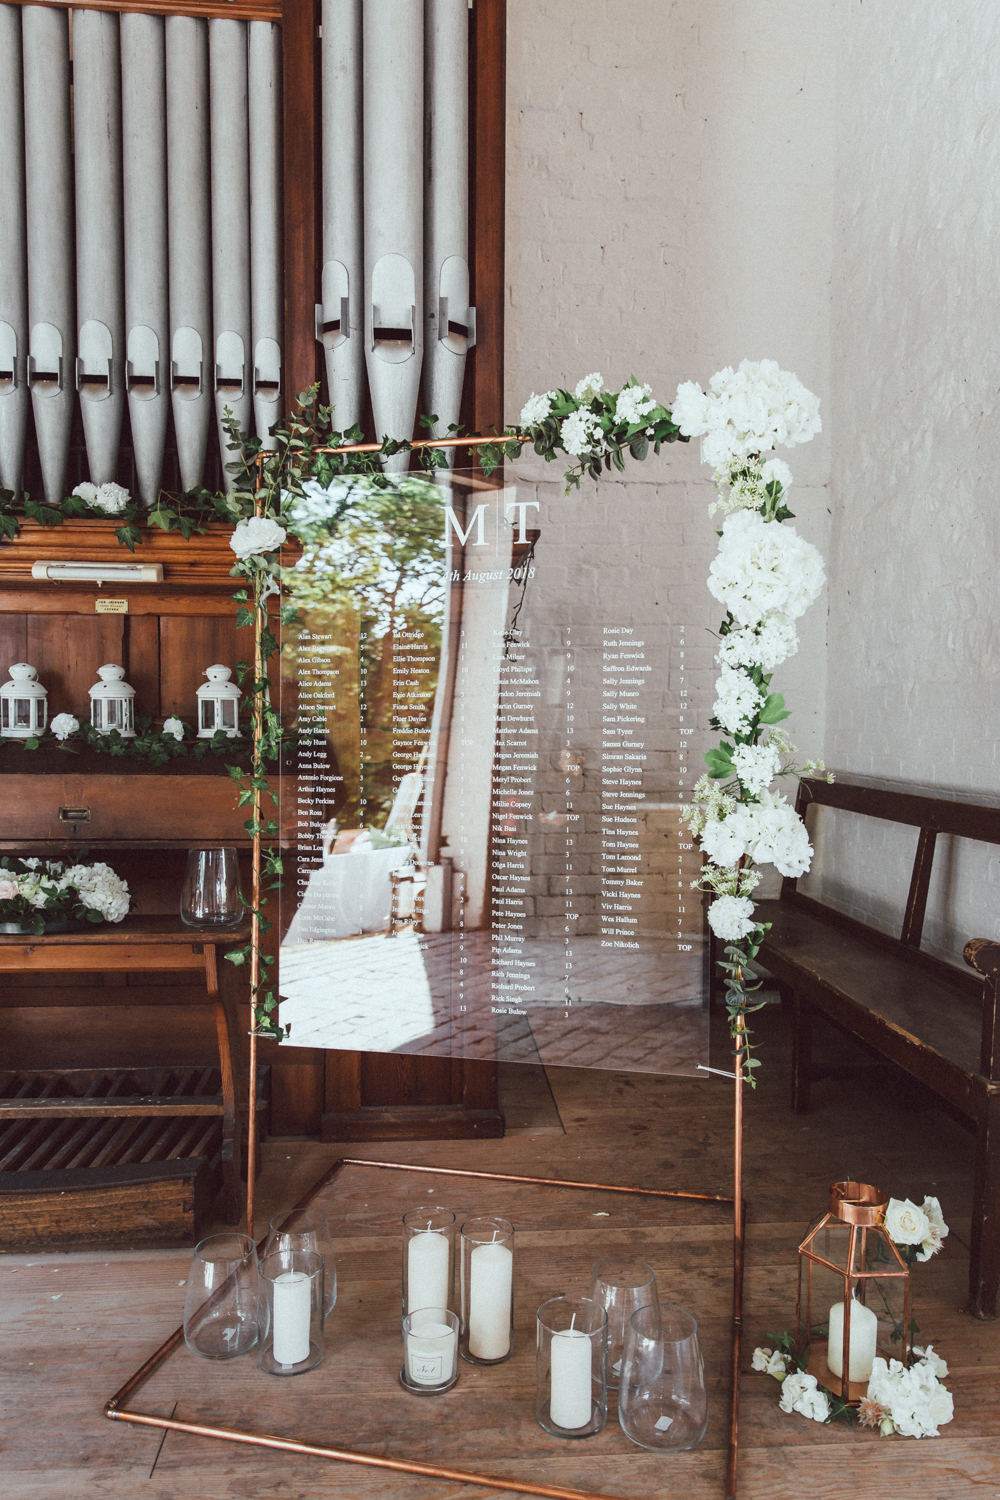 Acrylic: The Transparent Wedding Trend You NEED at Your